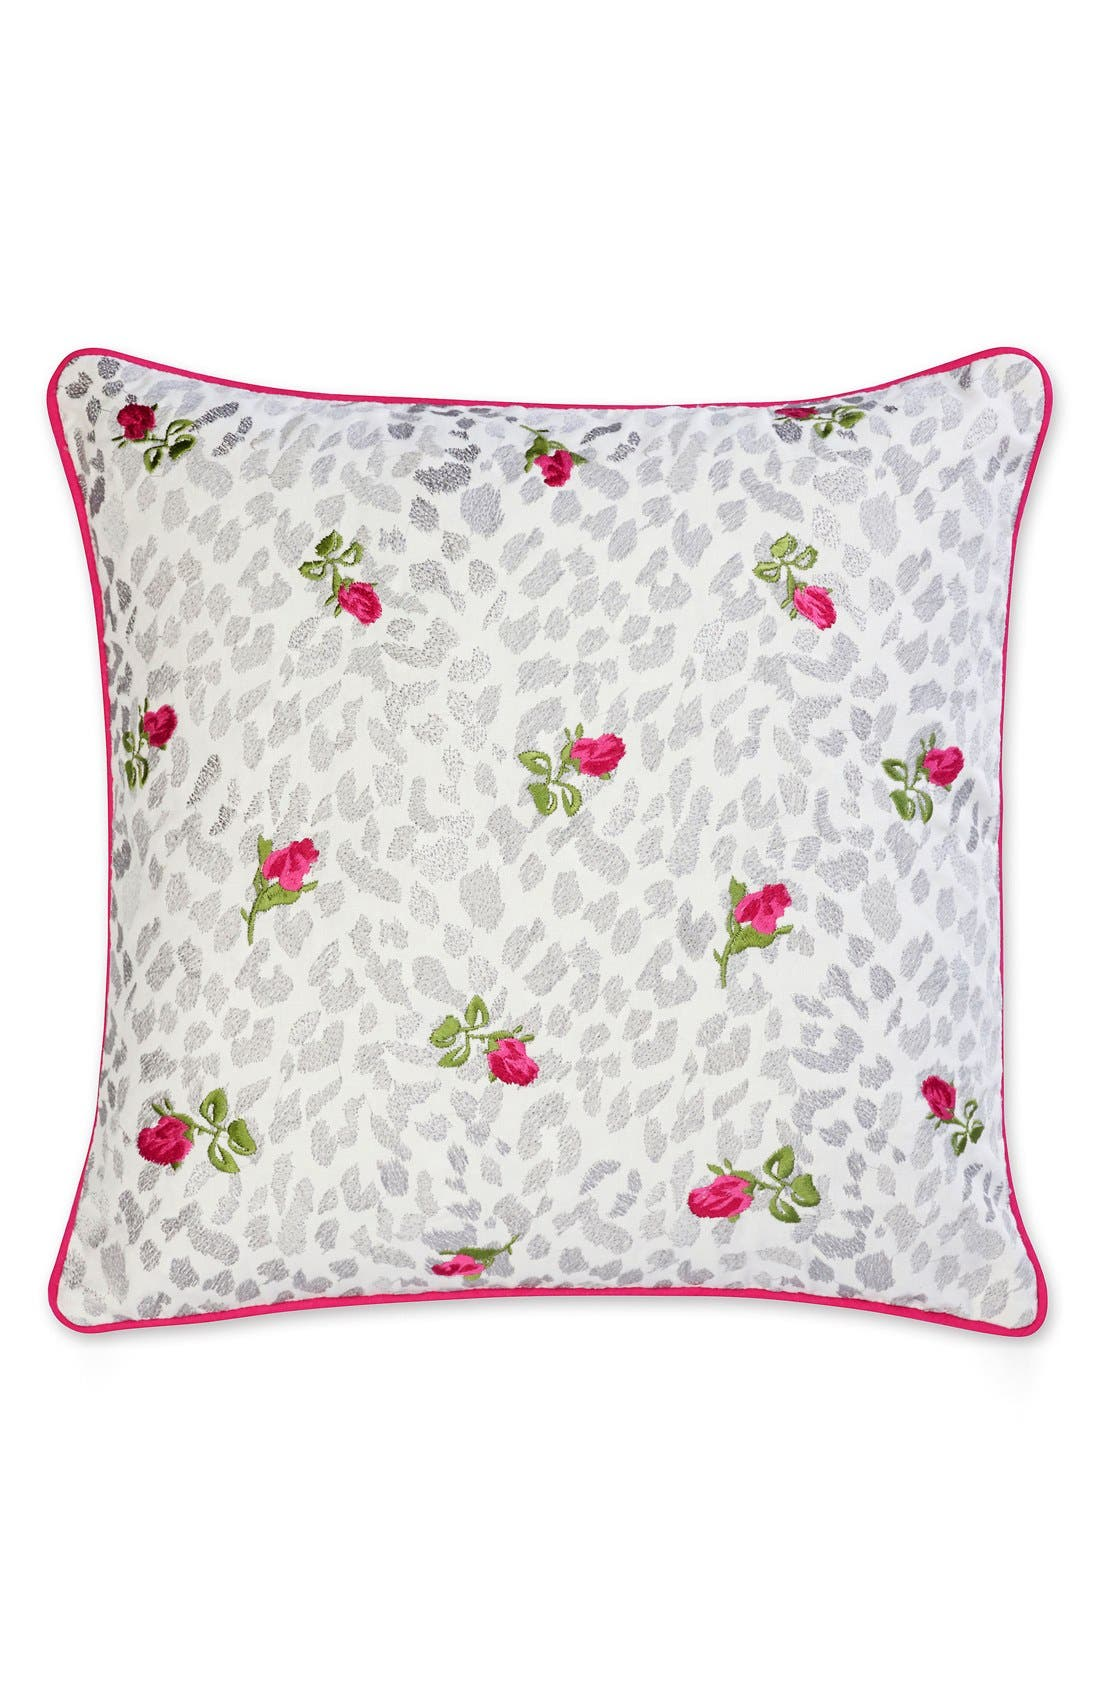 BETSEY JOHNSON BEDDING Polished Punk Leopard Rose Pillow